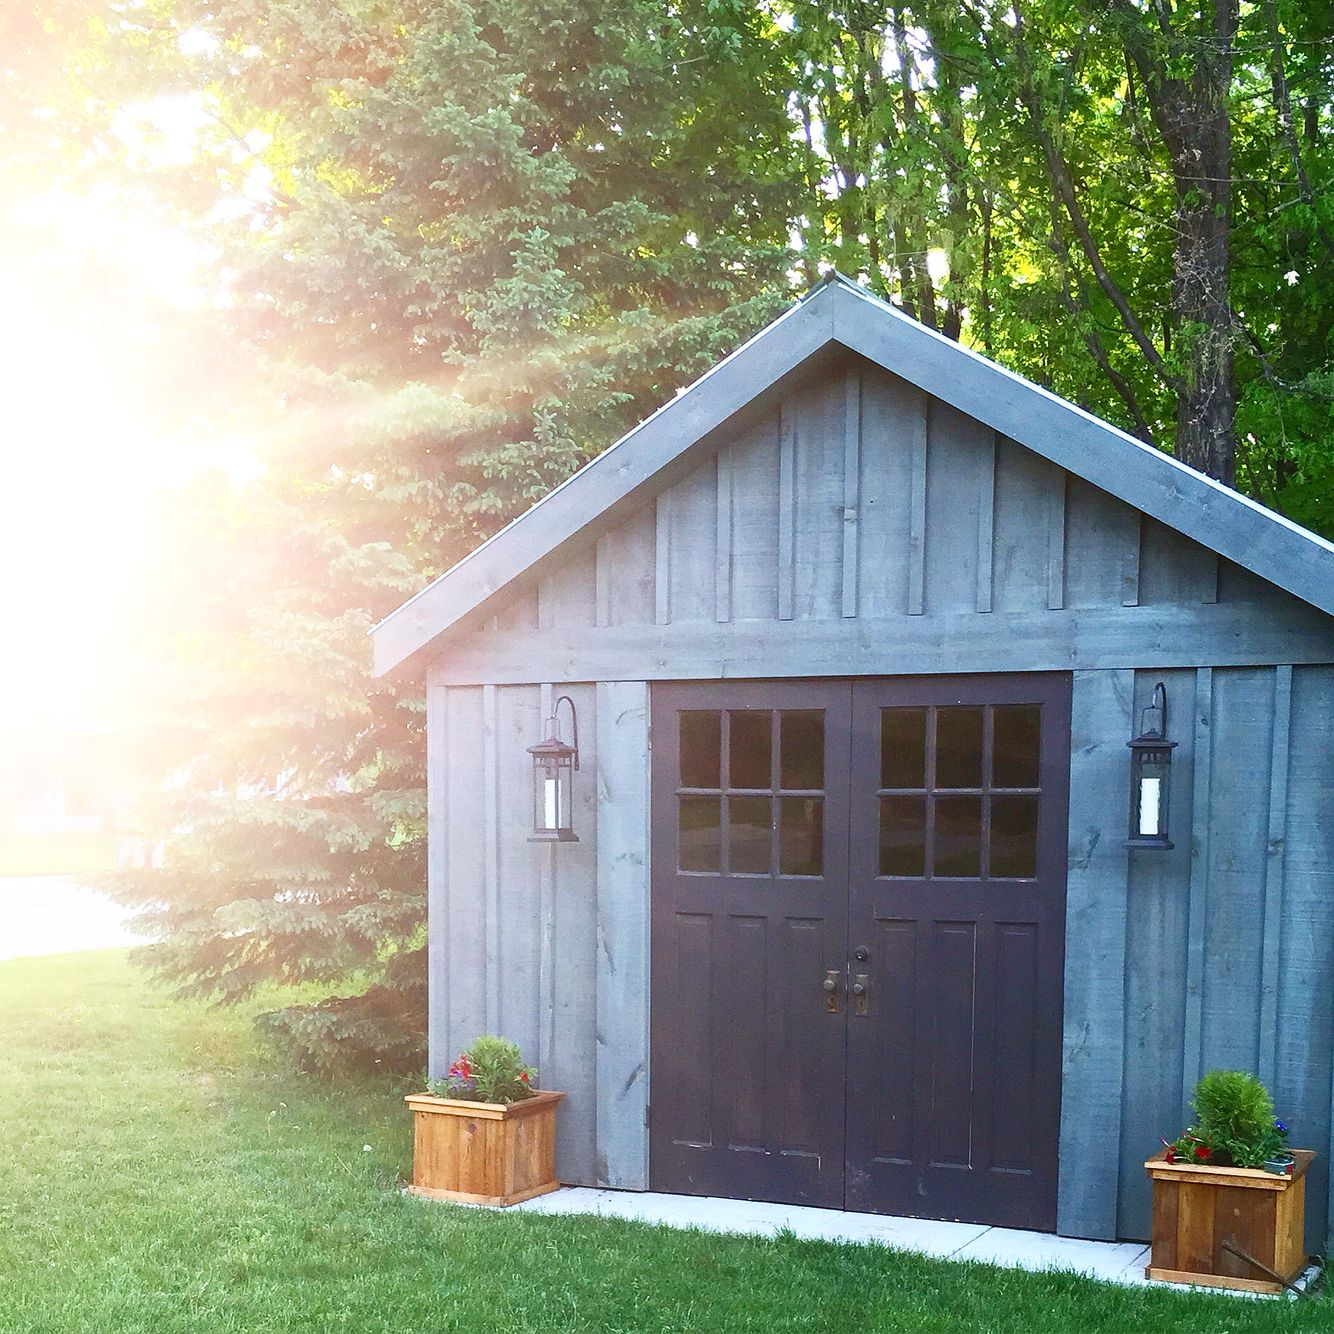 Diy Gartenhaus Diy Shed Board And Batten Metal Roof